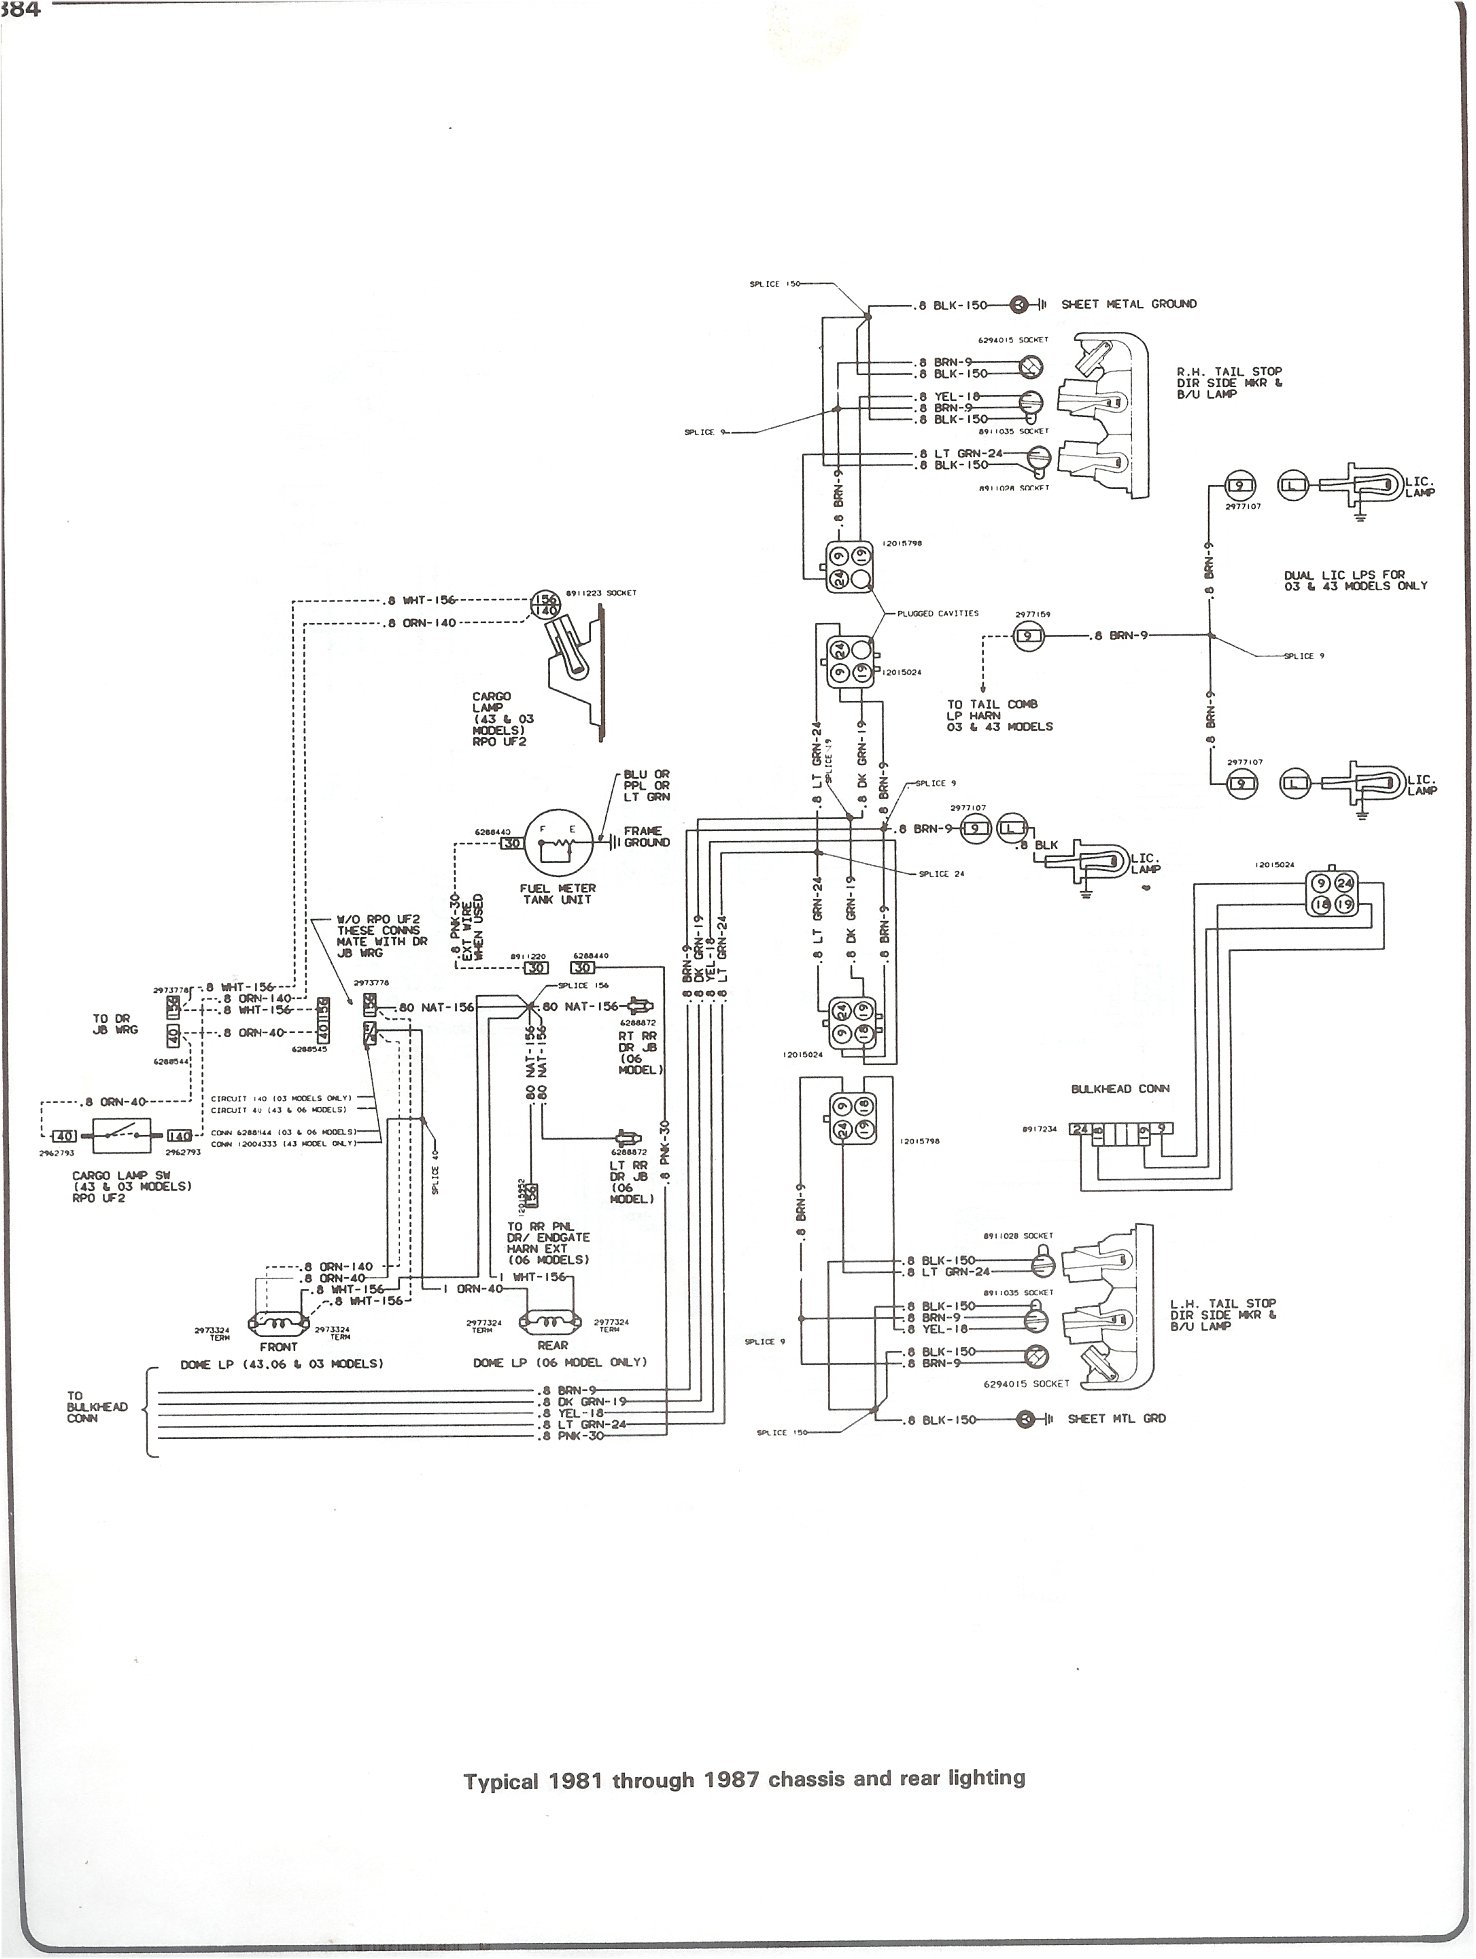 Leaf Blower Wiring Diagram Everything About For Motor Library Rh 74 Codingcommunity De Air Conditioning Schematics Lennox Ac